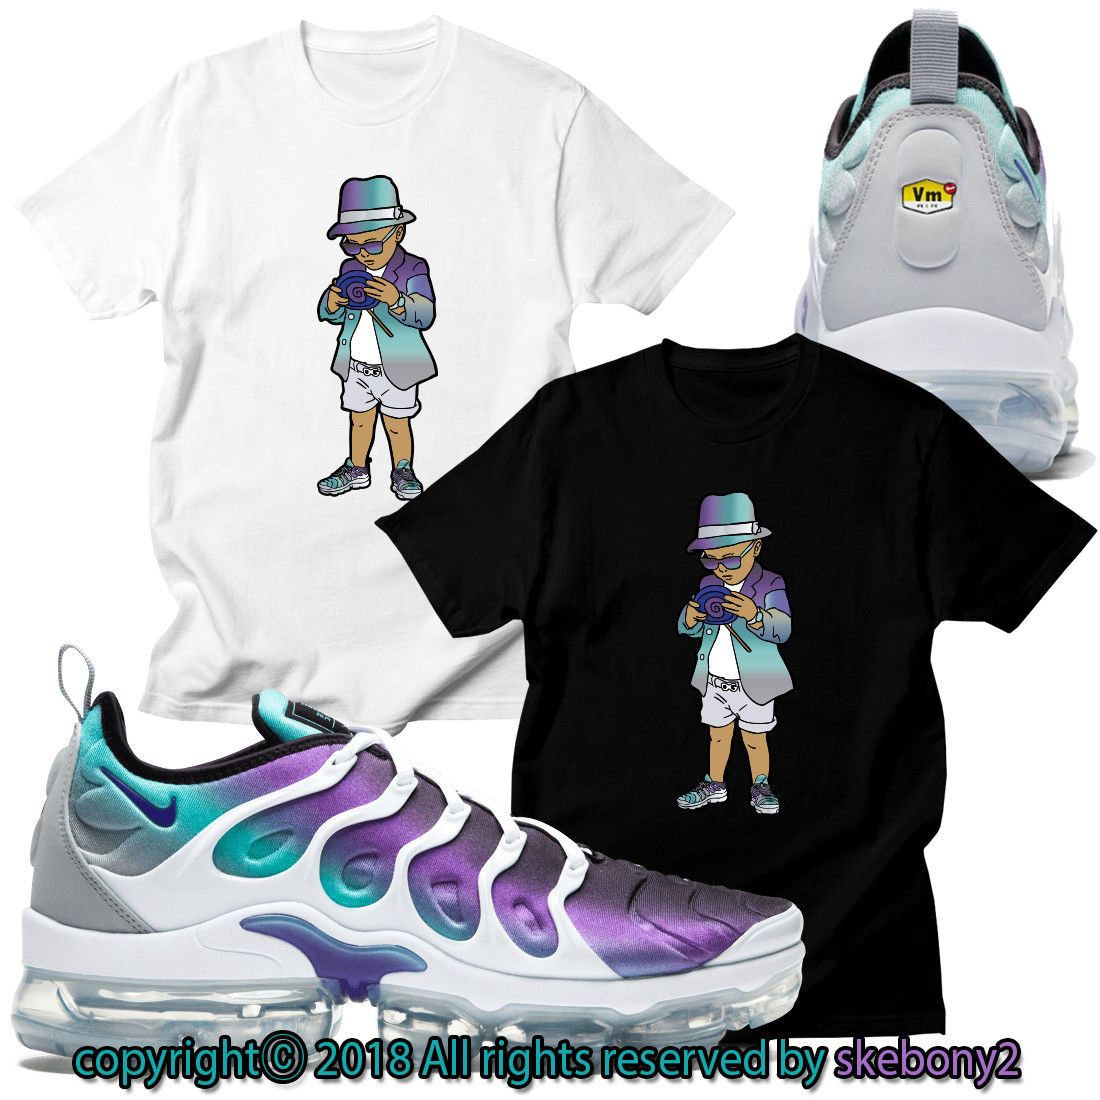 b54f2577a862f2 Details about NEW CUSTOM T SHIRT matching NIKE AIR VAPORMAX PLUS ...